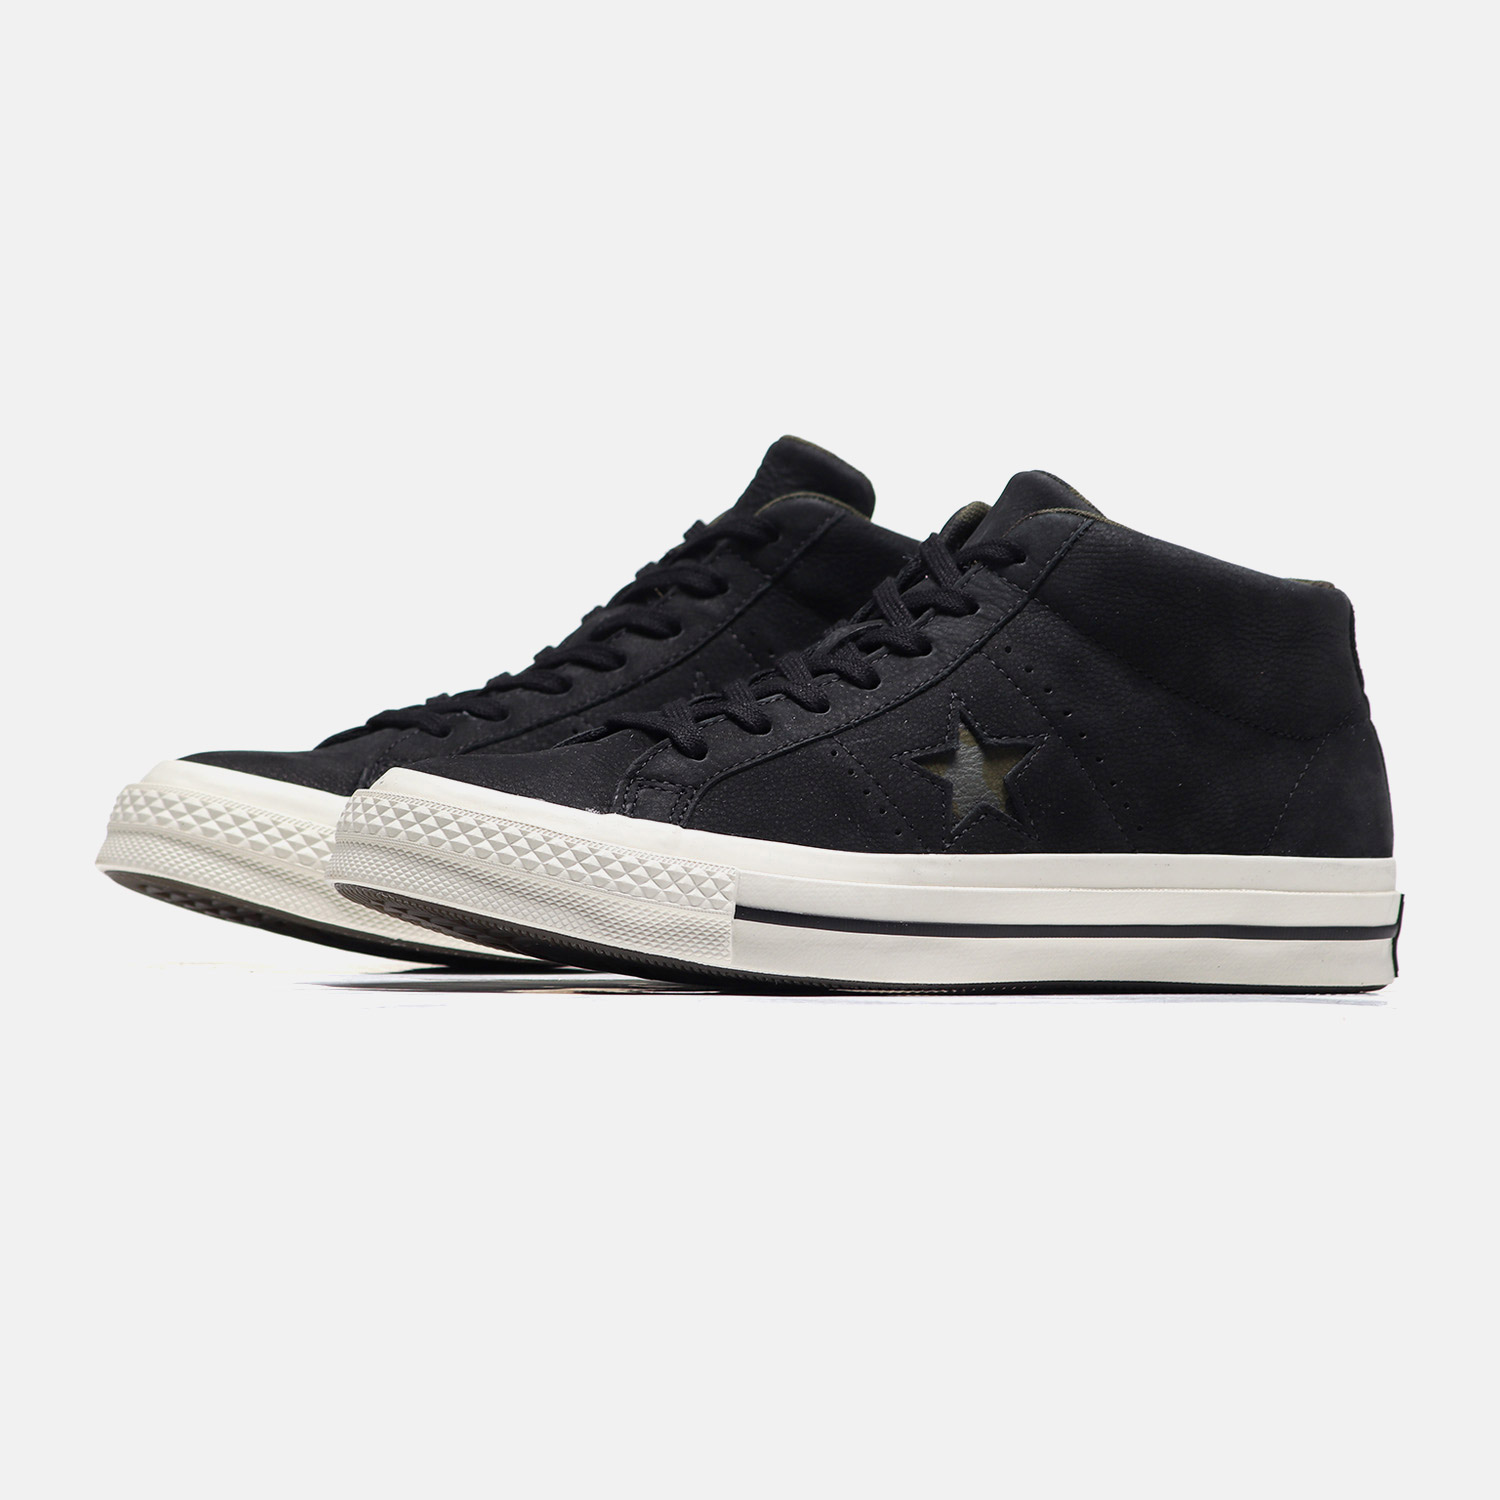 f0bf8d439ced4 USD 125.37  Converse men s shoes women s shoes shoes 2018 New One ...